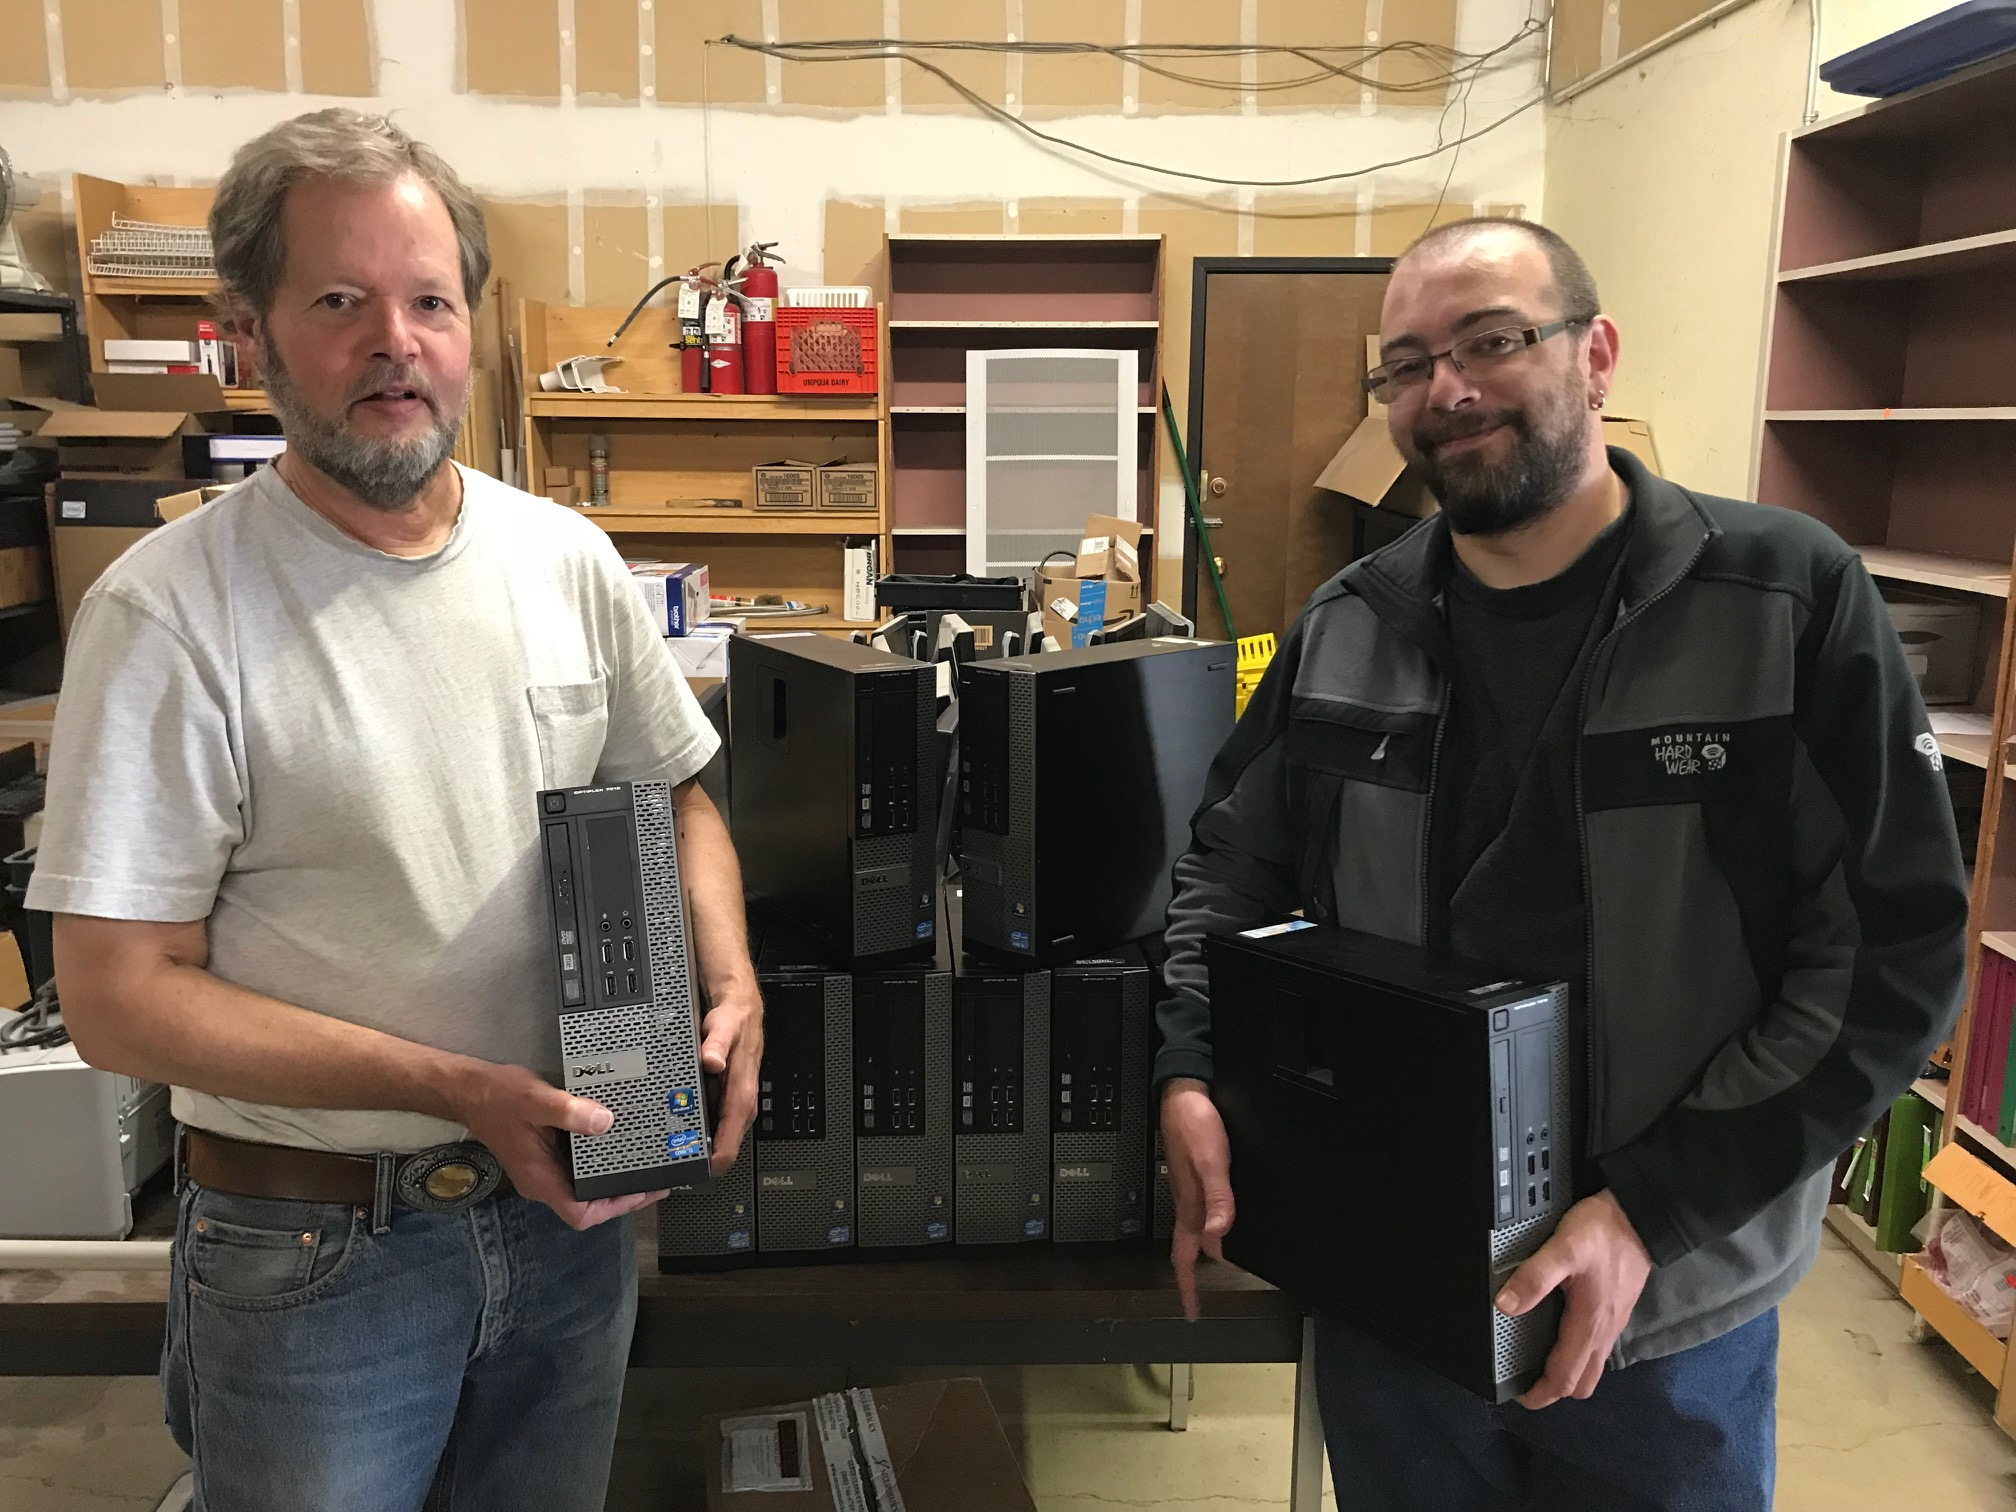 IT Director Jim Carpenter and IT Assistant Loren Tussing show of some of the donated PC towers provided to Looking Glass from SELCO, stored for cleaning and setup at the Looking Glass warehouse.